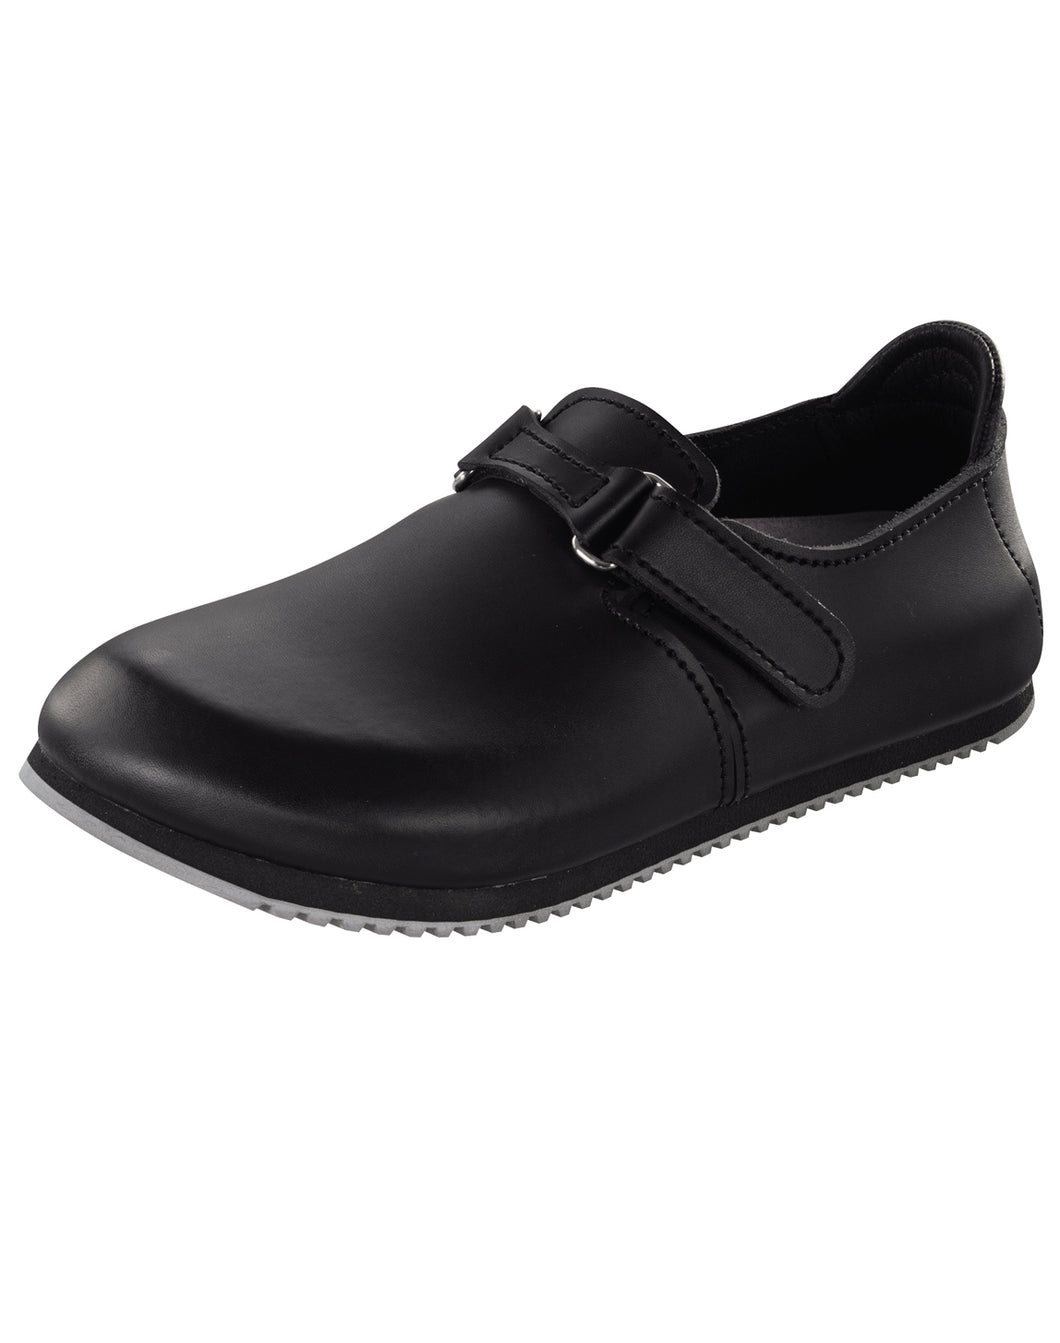 BIRKENSTOCK LINZ SL BLACK NL REGULAR